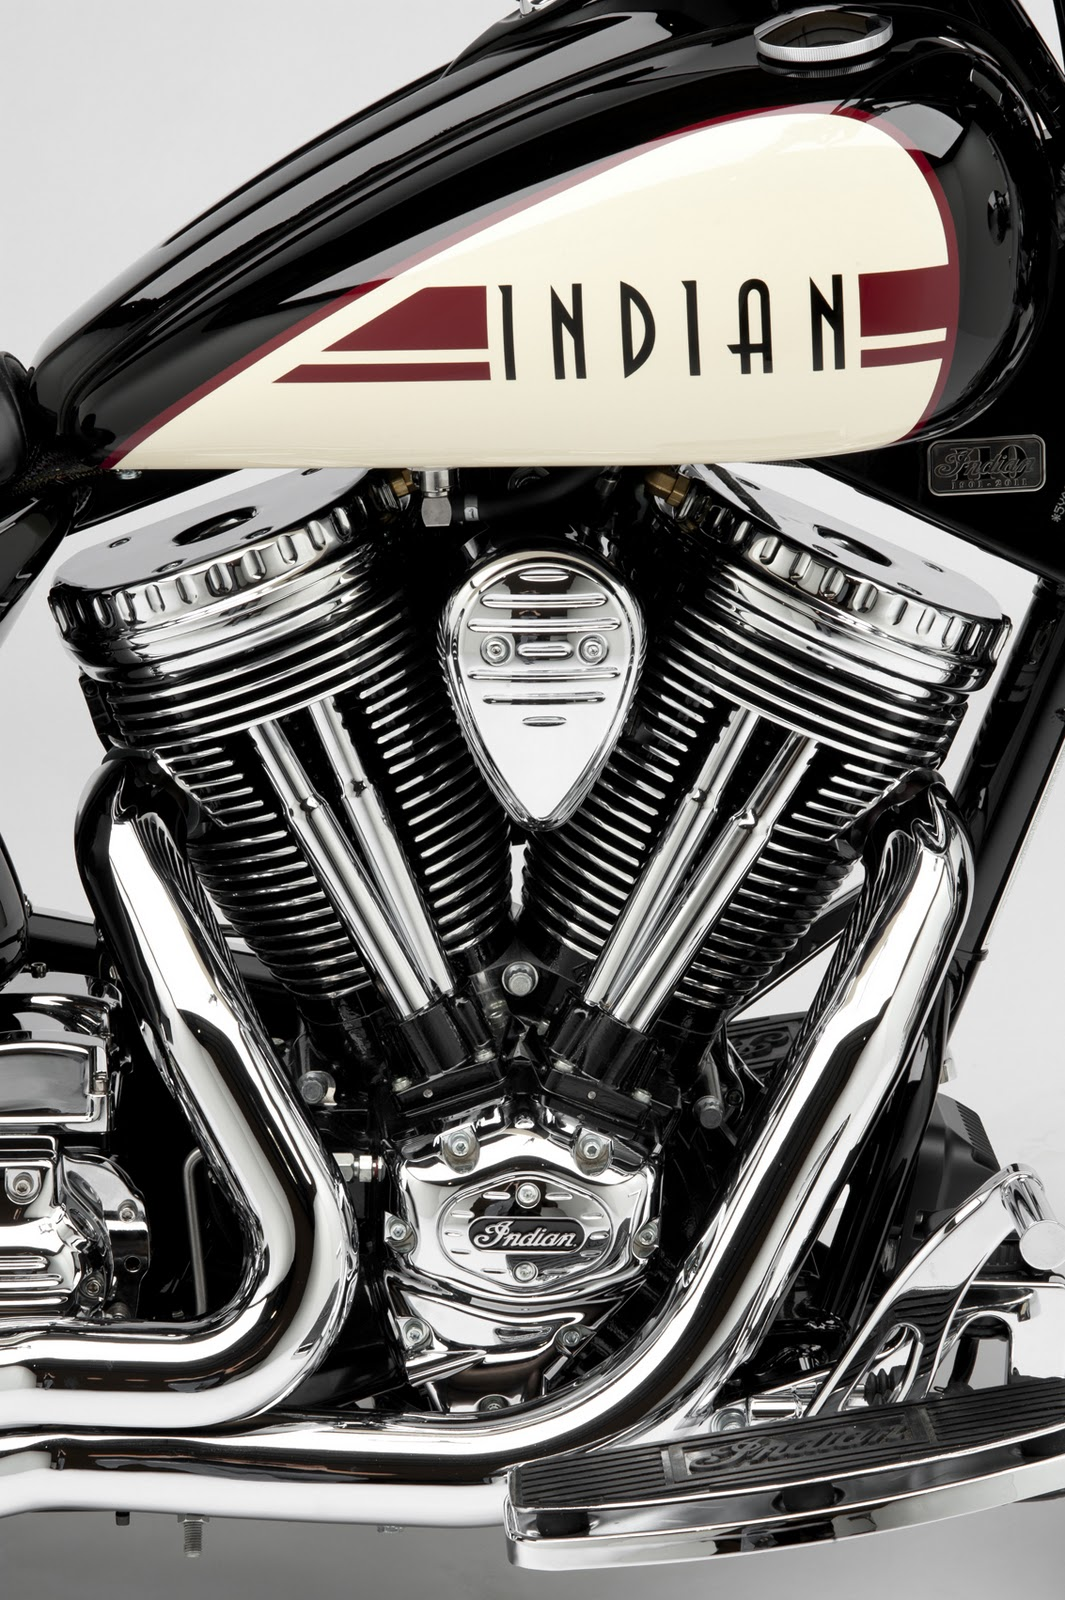 2011 Motorcycles Polaris Recalling Certain Indian And Victory Models